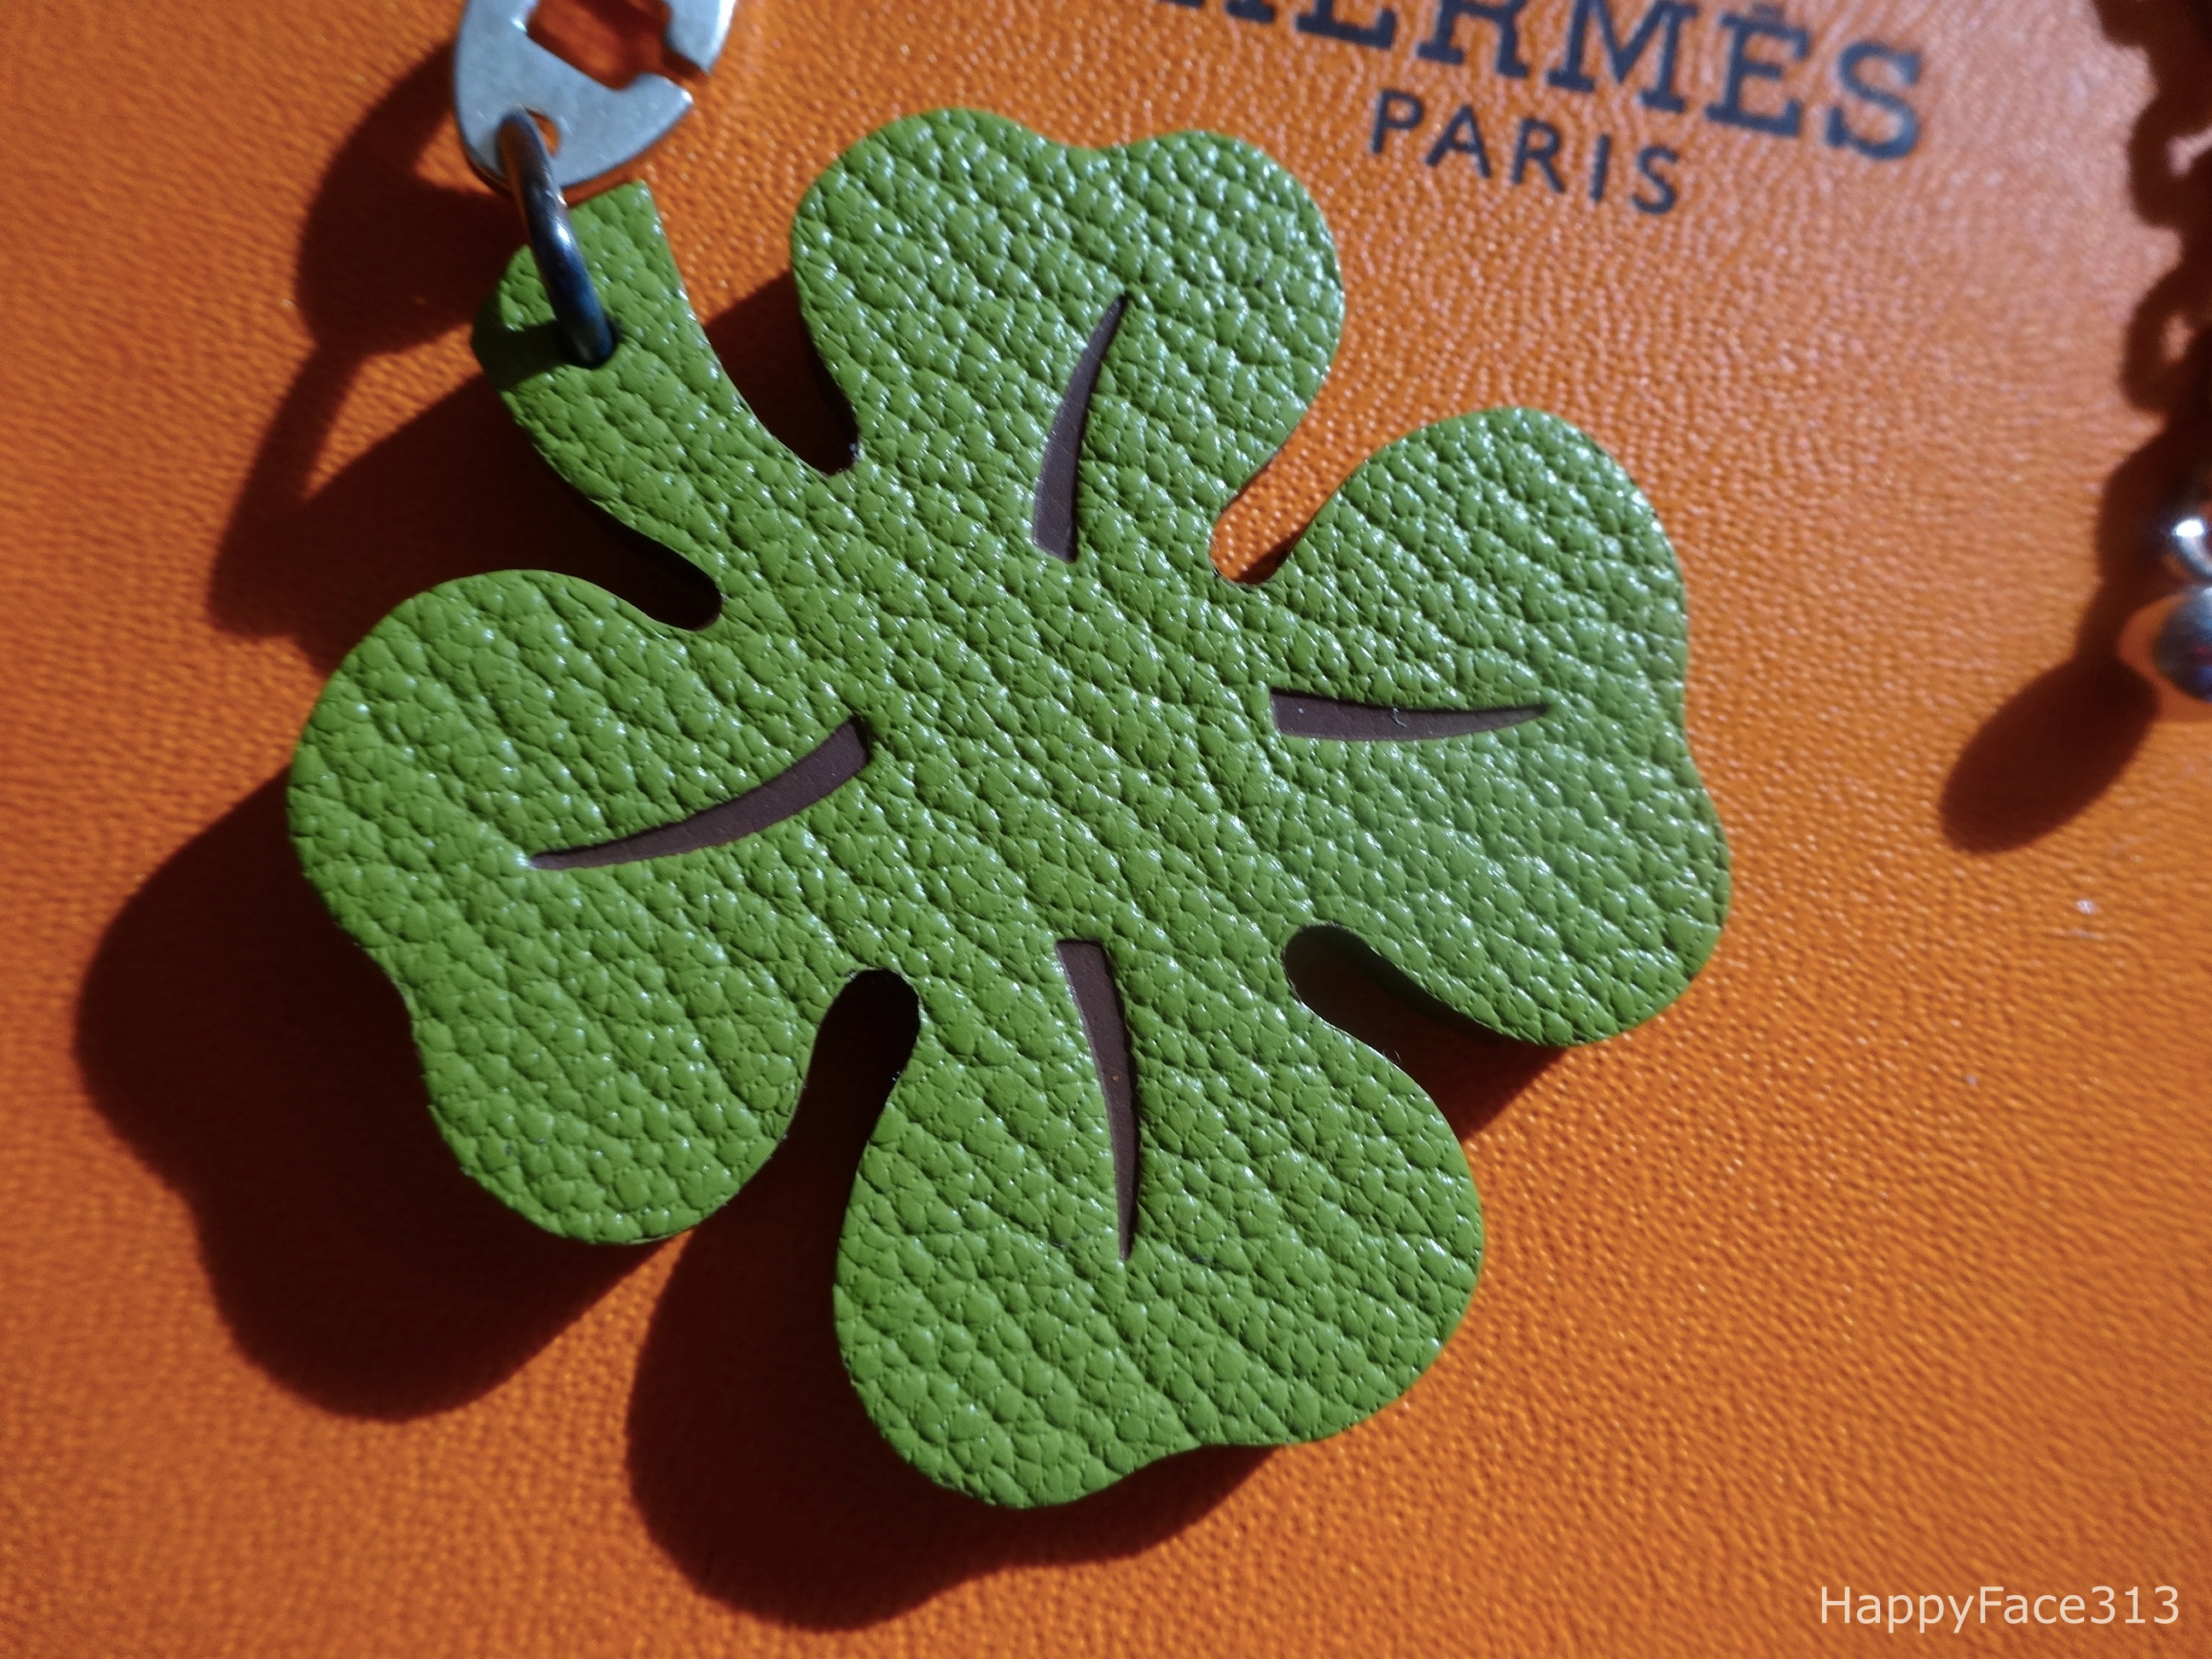 Of course Hermès Lucky Clover has a green side, too!